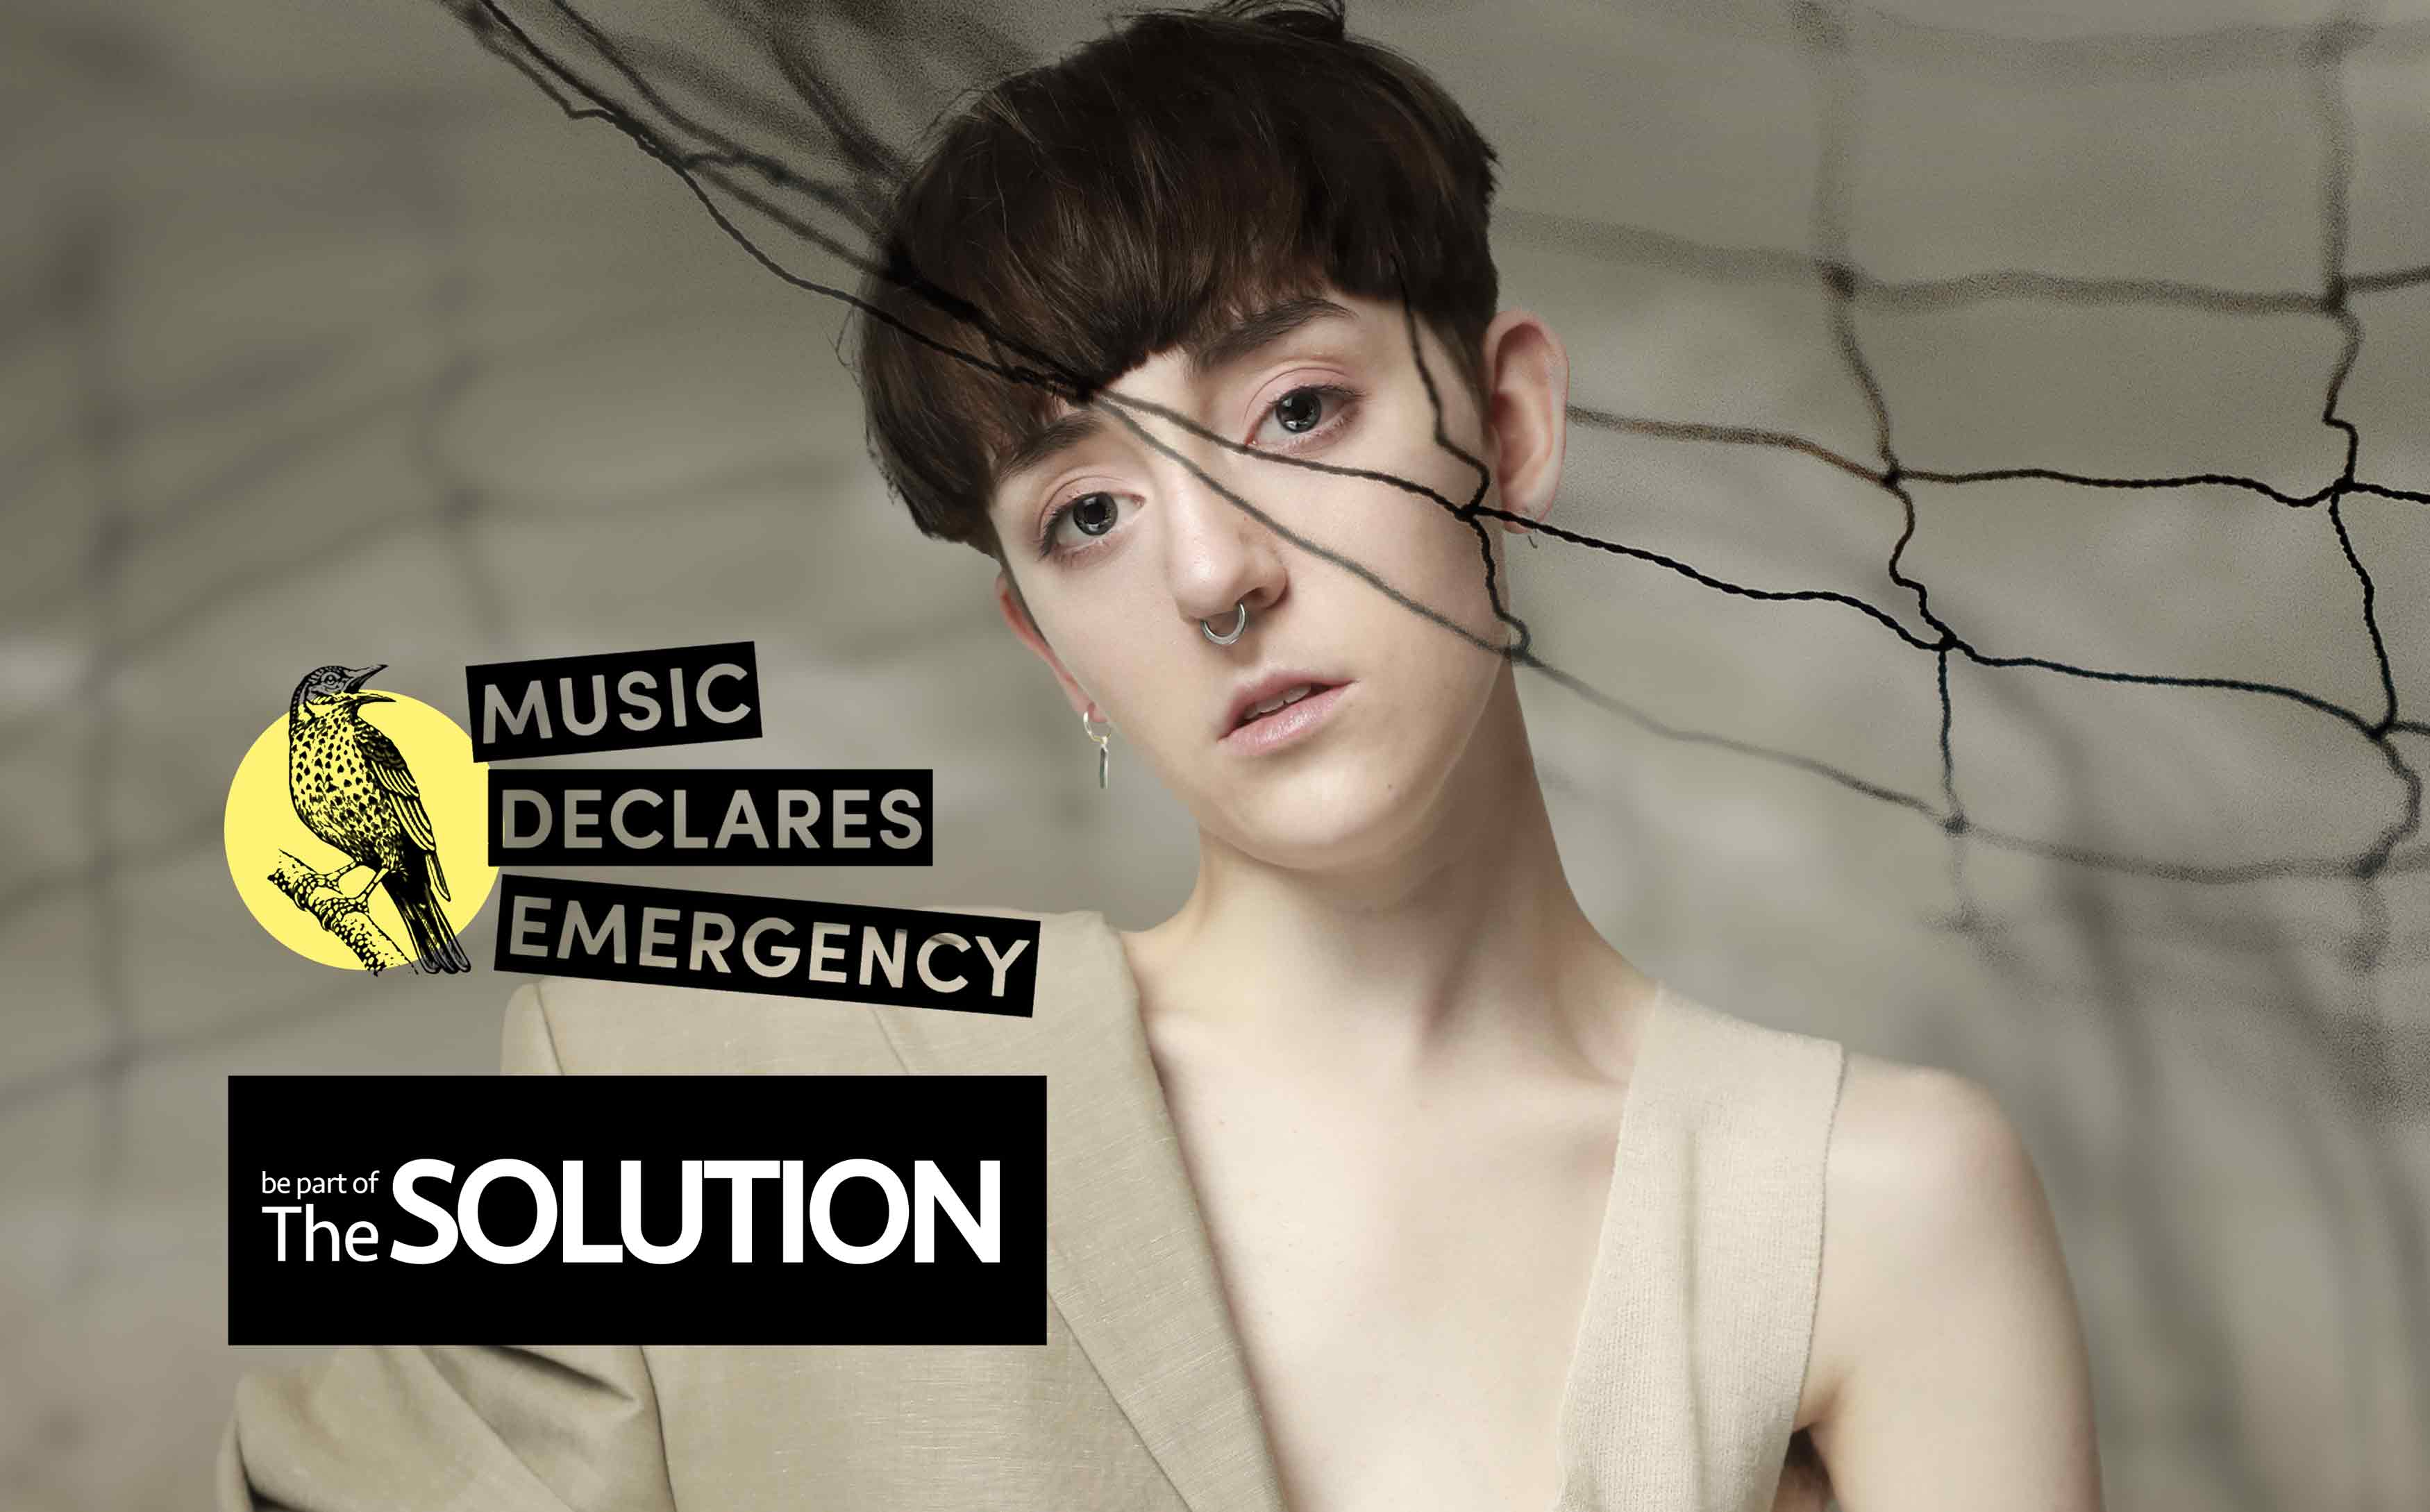 bruch music climate music declares the solution emergency WDCAY eco warrior bbc introducing